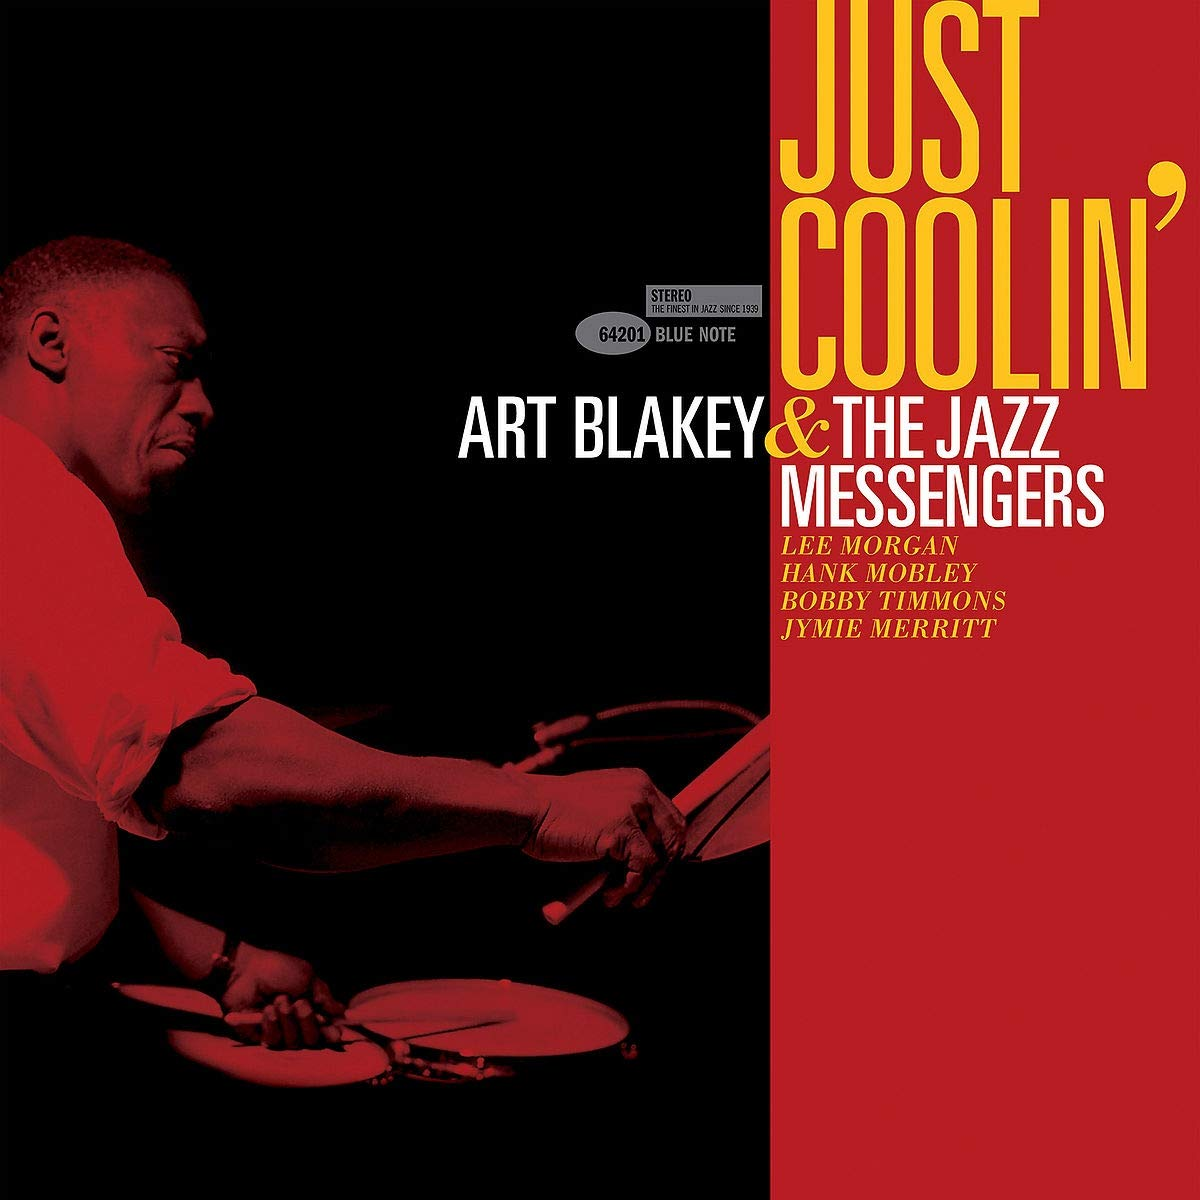 Art Blakey & The Jazz Messengers